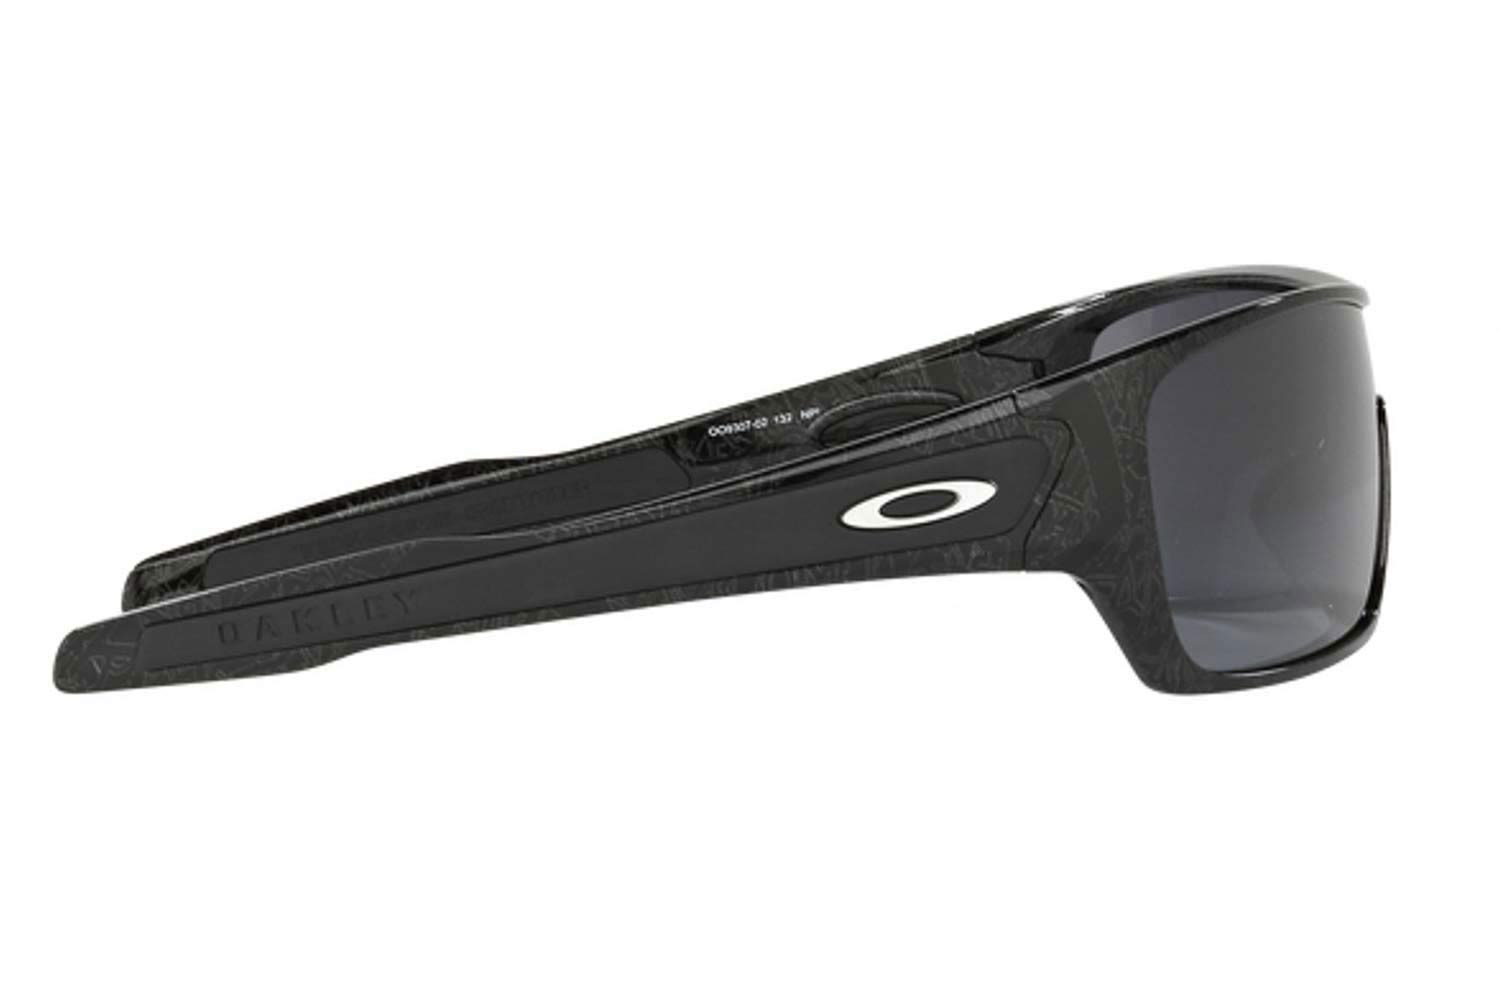 Oakley μοντέλο Turbine Rotor 9307 στο χρώμα 02 BlkSilver GhostTxt Black Iridium